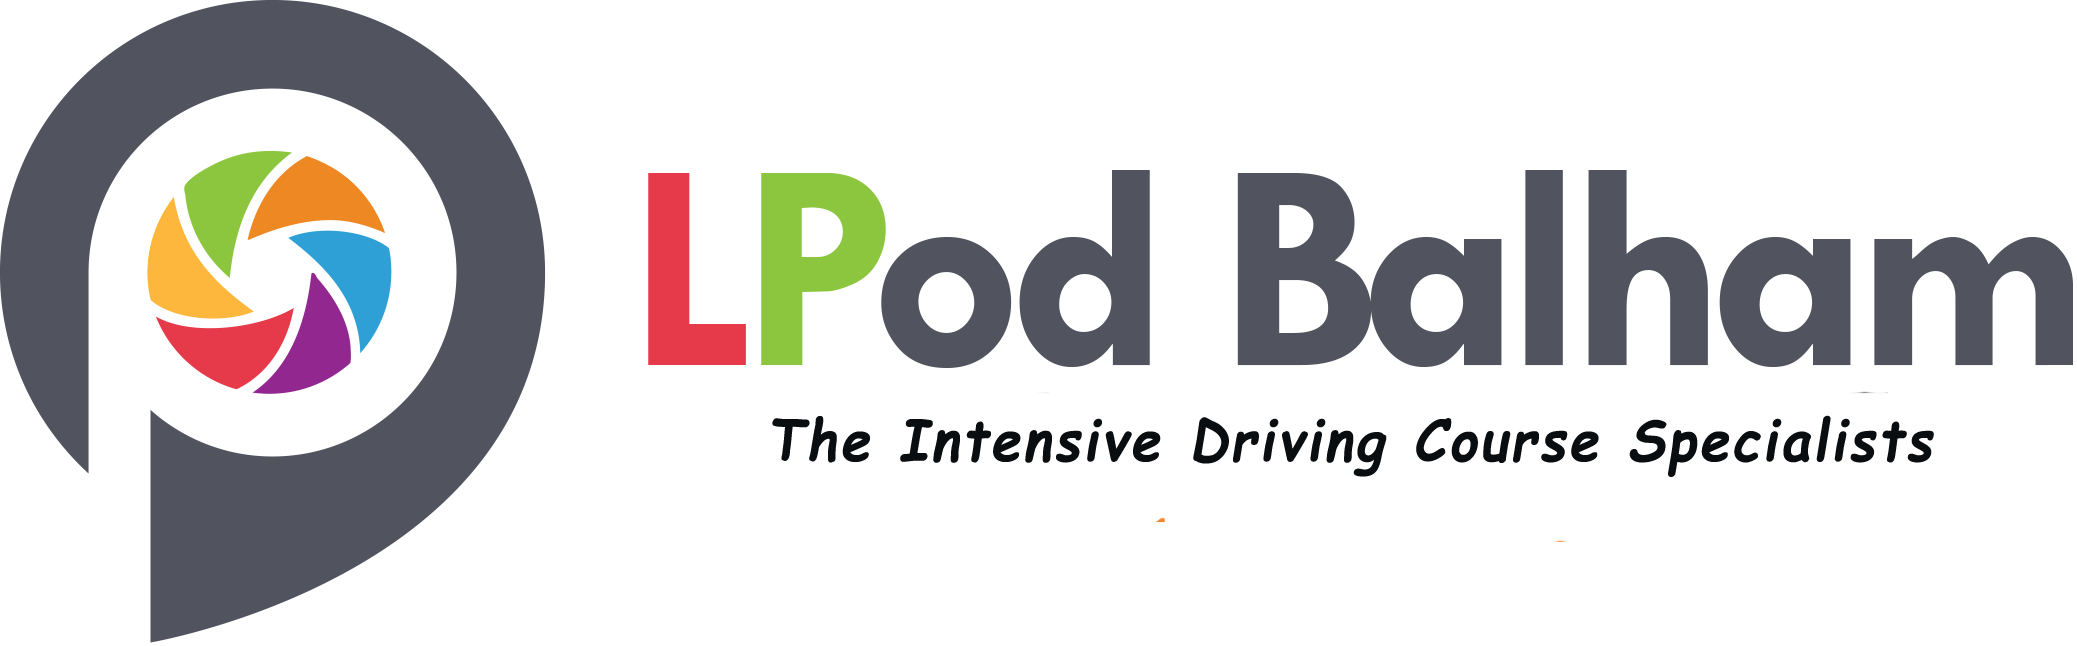 intensive driving courses balham, intensive driving school balham, intensive driving lessons balham, fast pass driving courses balham, driving school balham, crash driving courses balham, automatic driving lessons balham